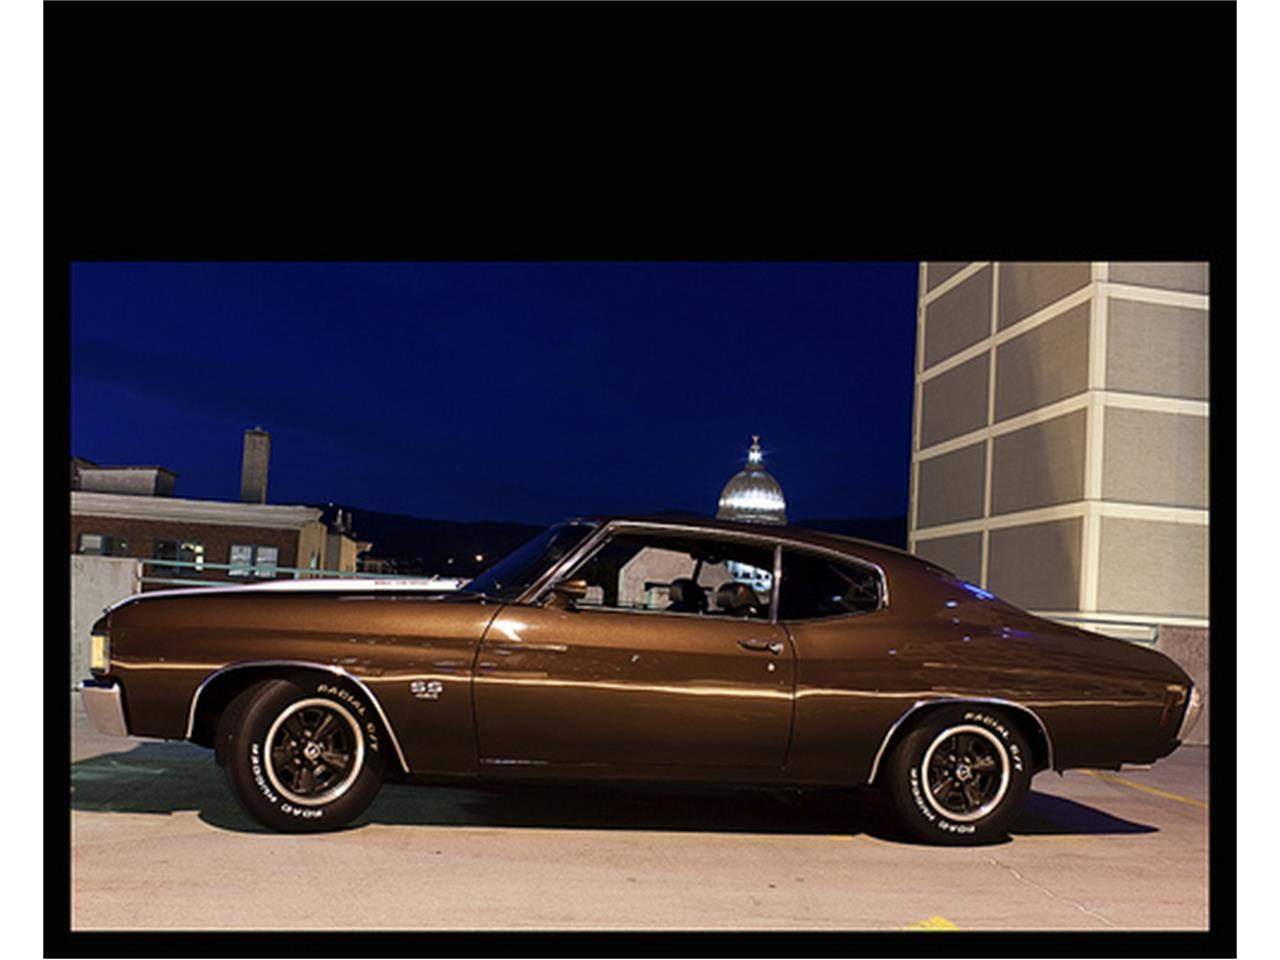 Large Picture of Classic '72 Chevelle - $52,700.00 - JLY8